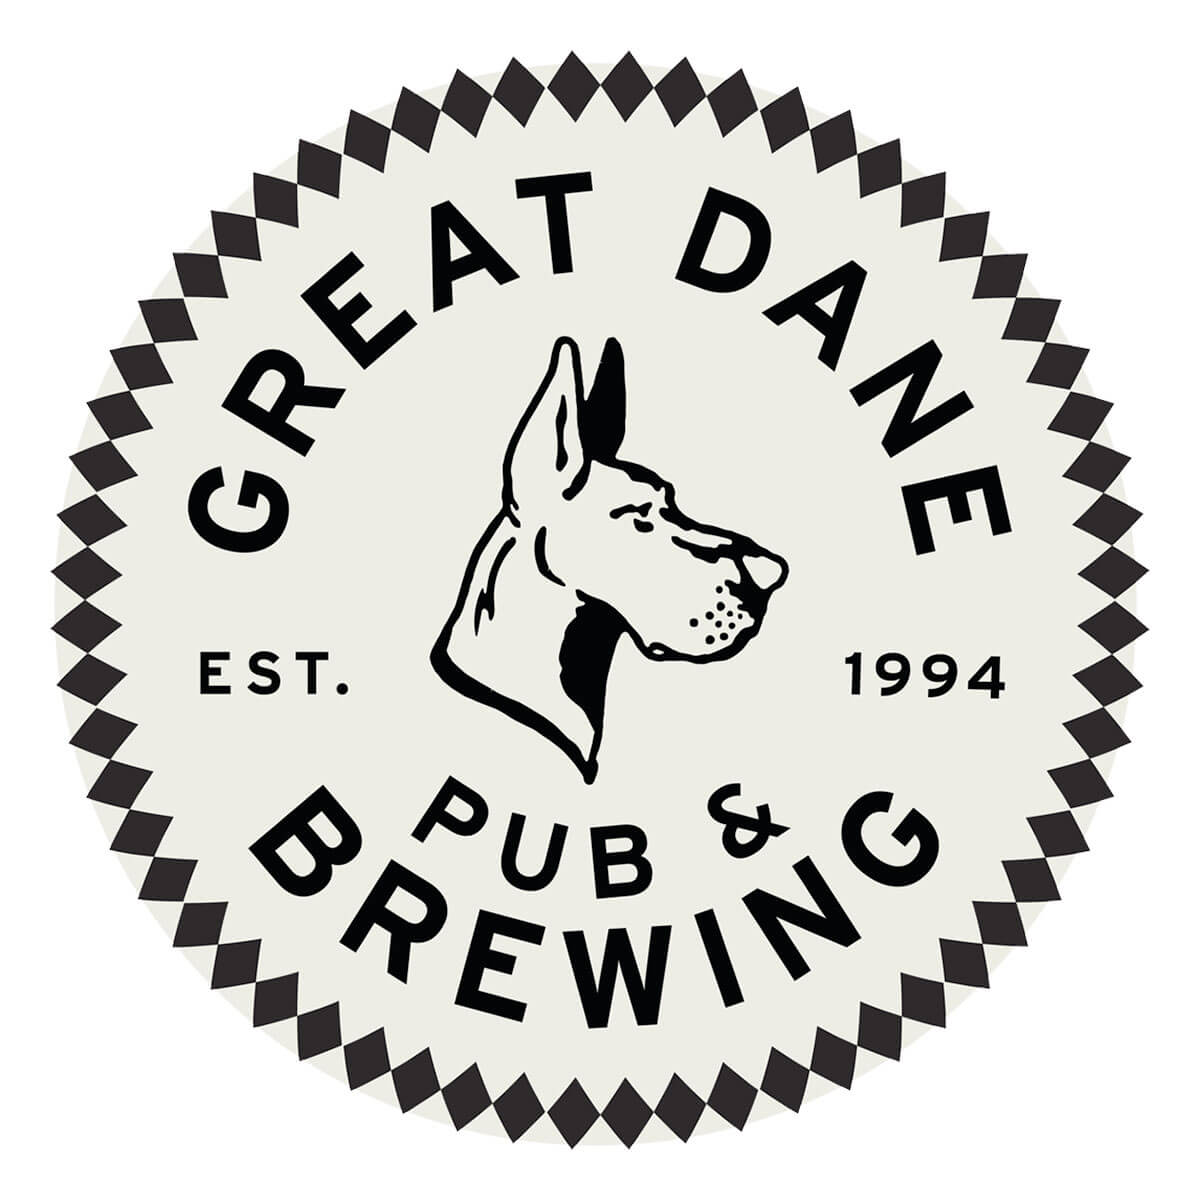 AB-Breweries-Great-Dane-Pub-Brewing-Company-Logo-1